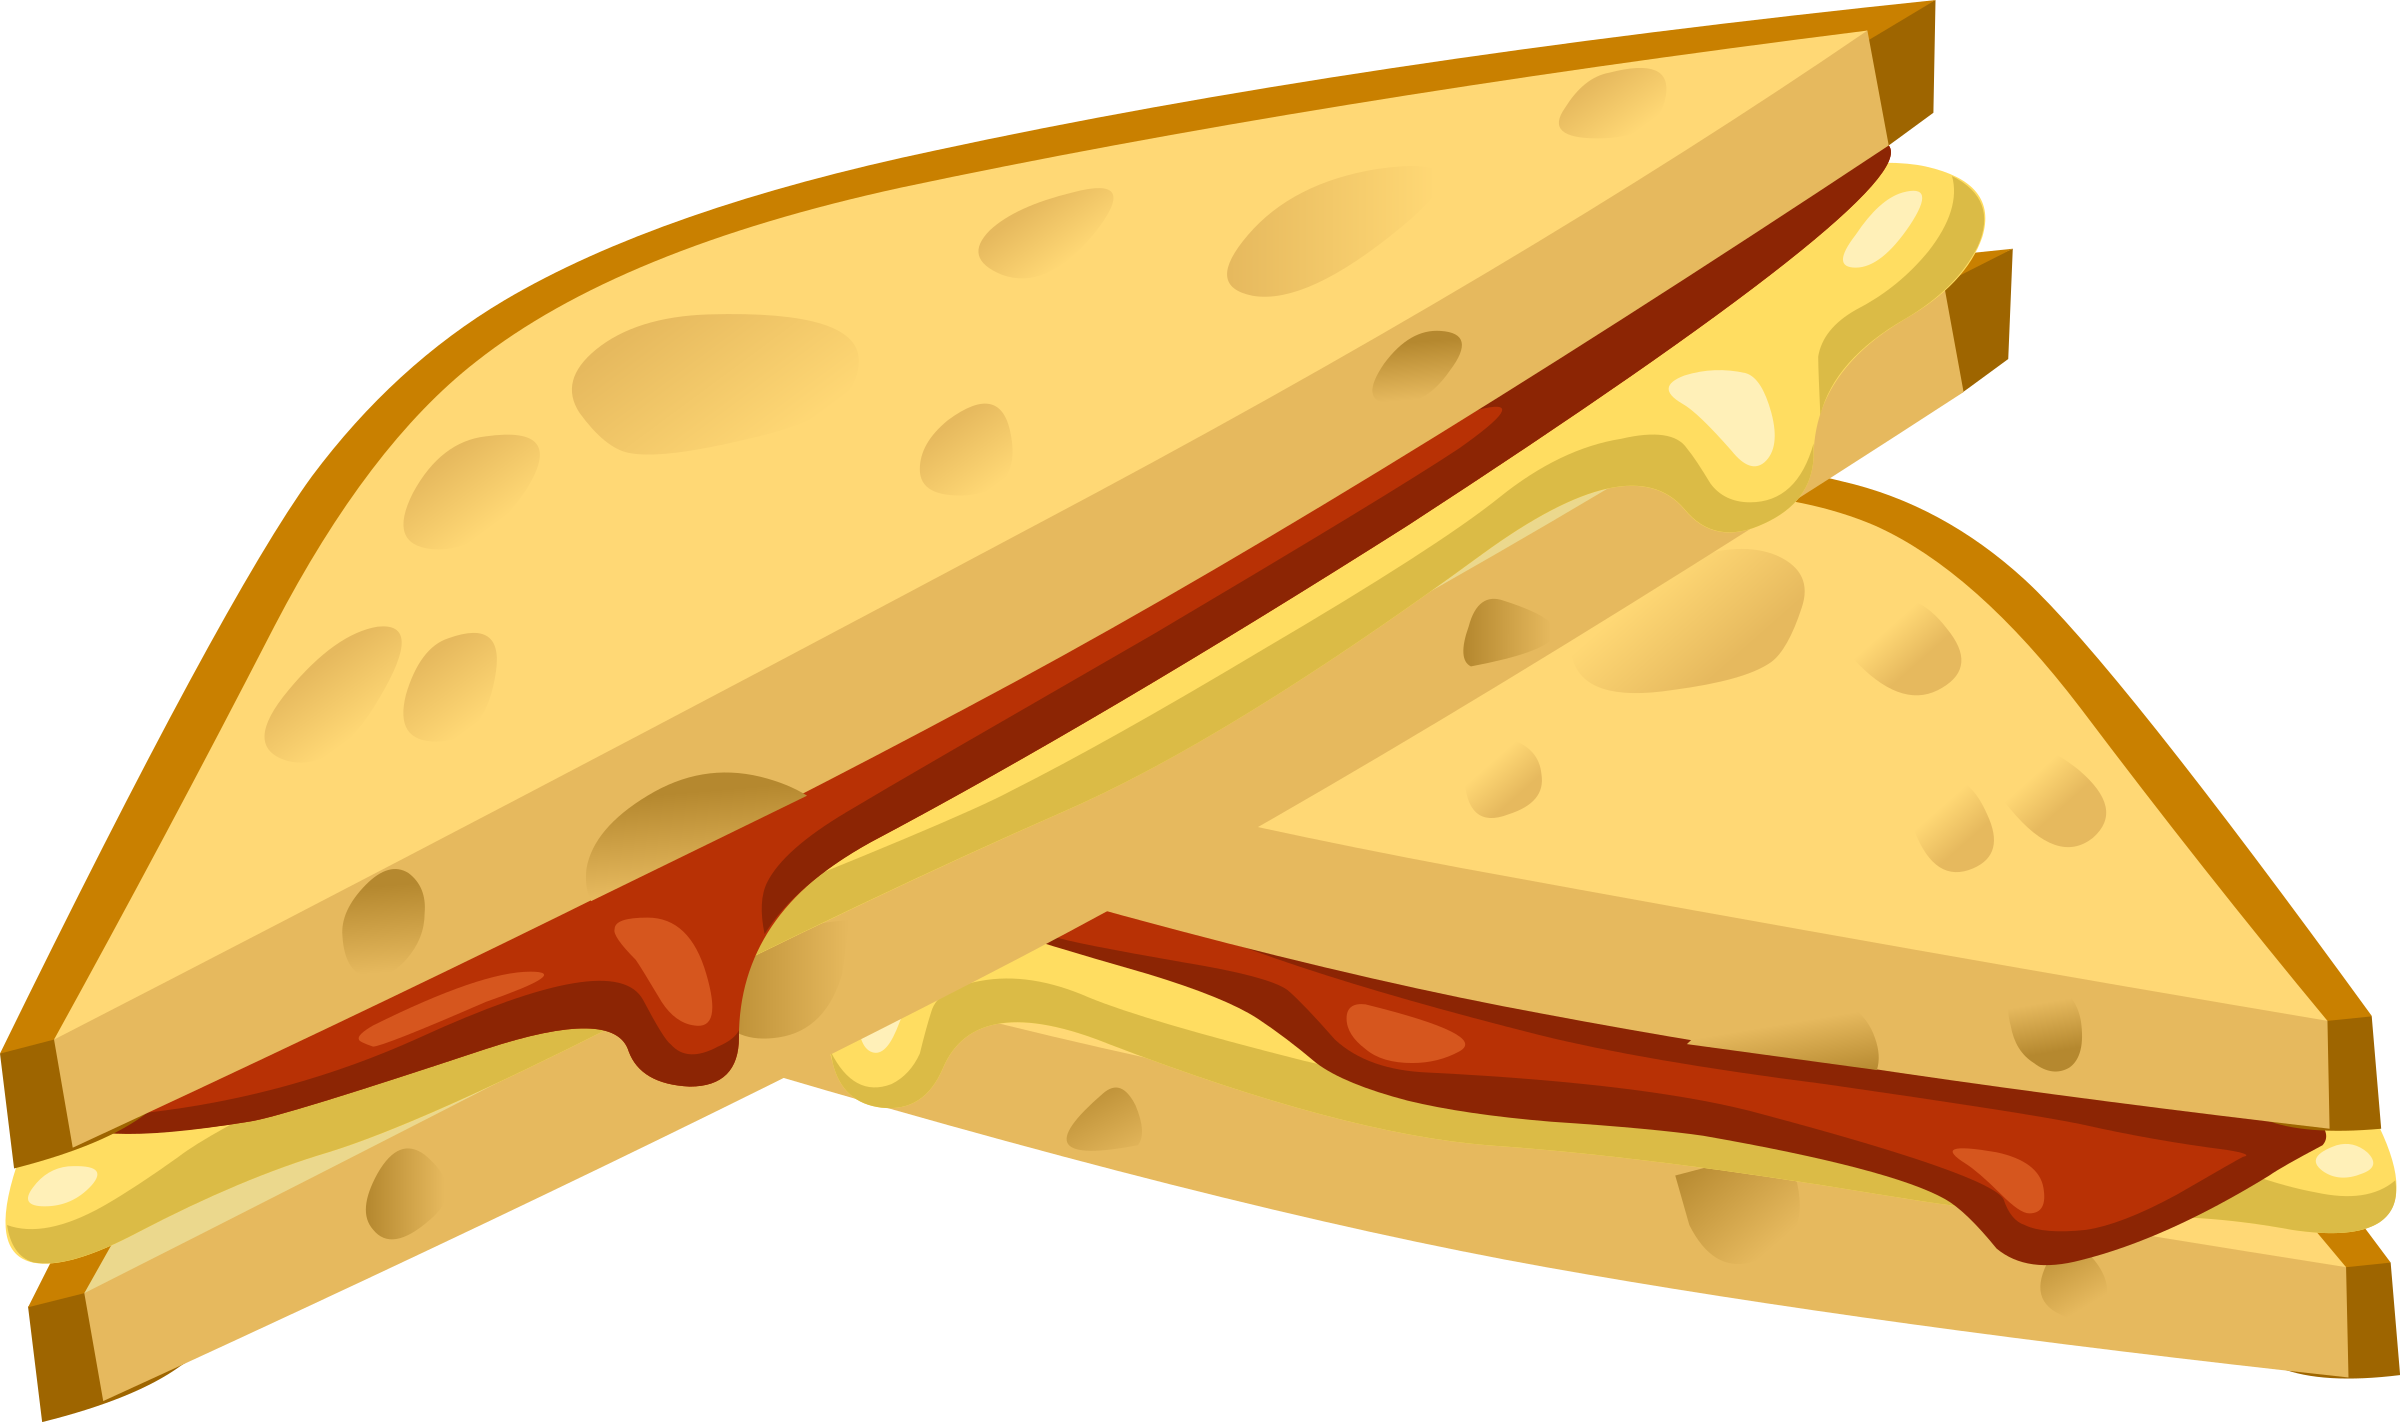 Free cliparts sandwiches download. Square clipart cheese